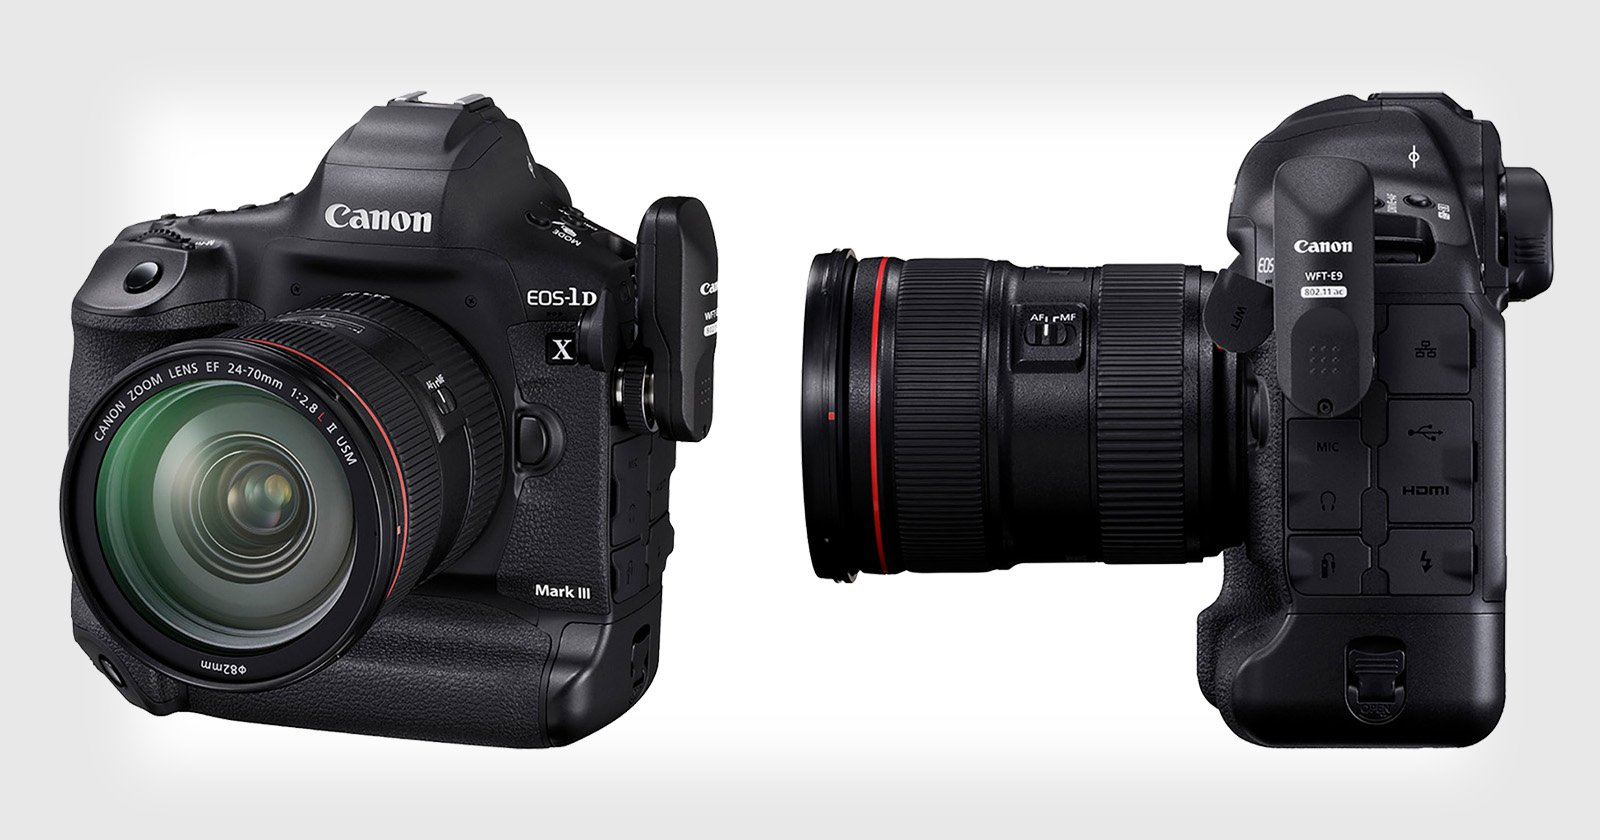 Canon 1D X Mark III Specs Leaked: Insane Buffer, 5.4K RAW Video Recording, and More